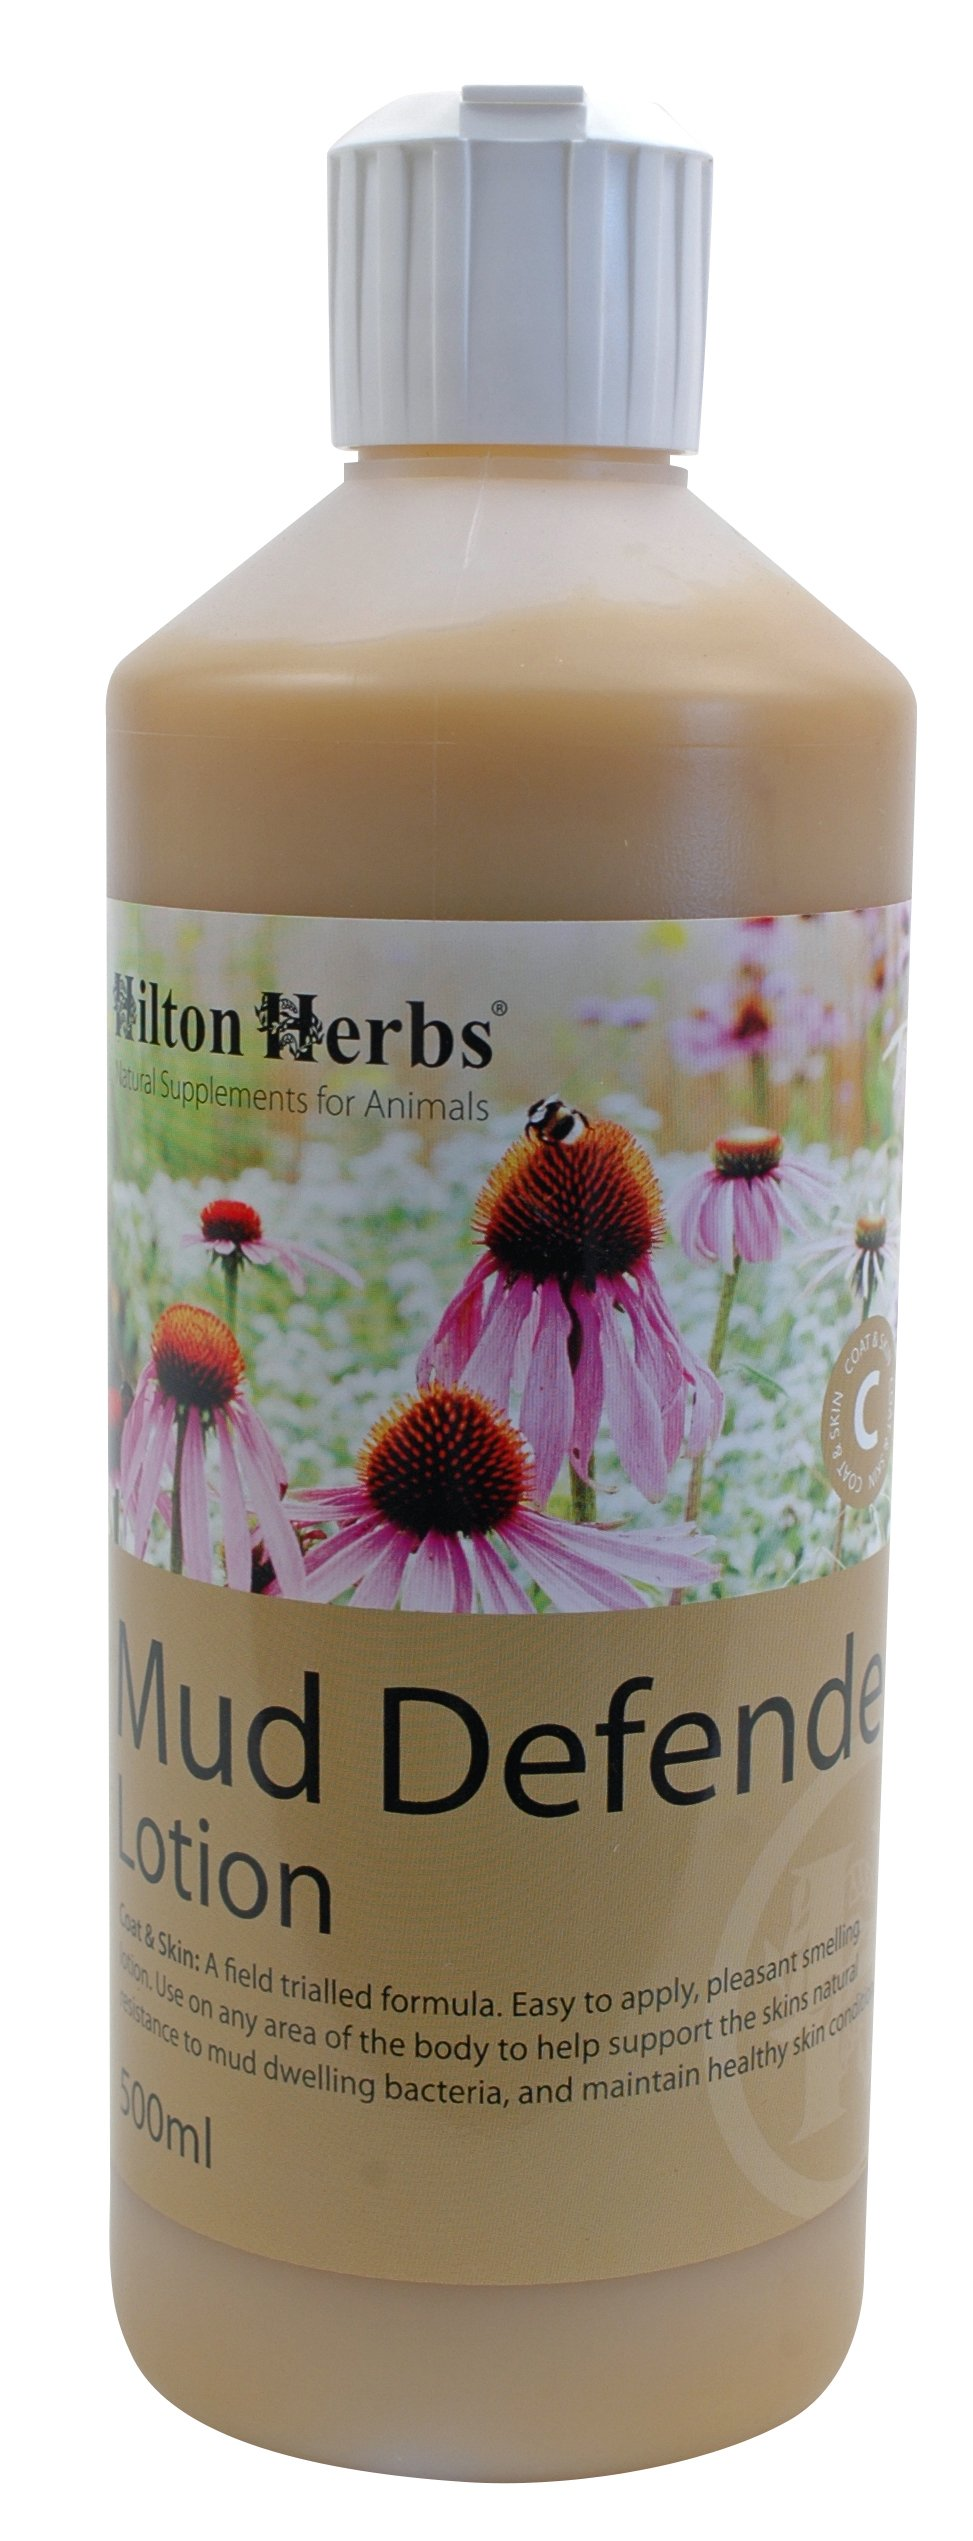 Hilton Herbs Mud Defender Bacteria Protection Lotion for Horses, 1.05pt Bottle by Hilton Herbs